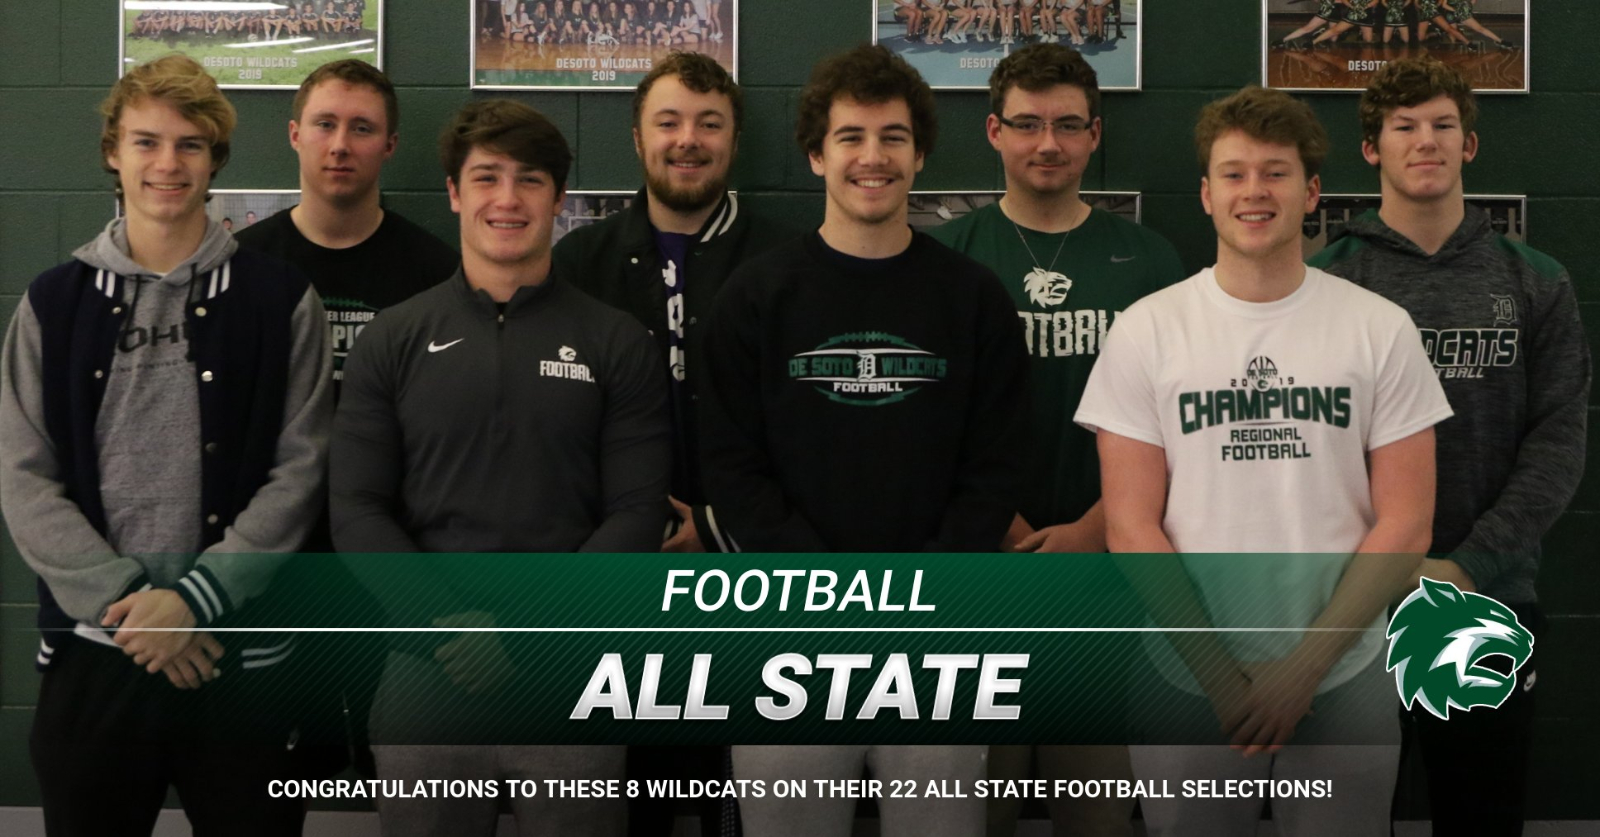 All State Football Selections